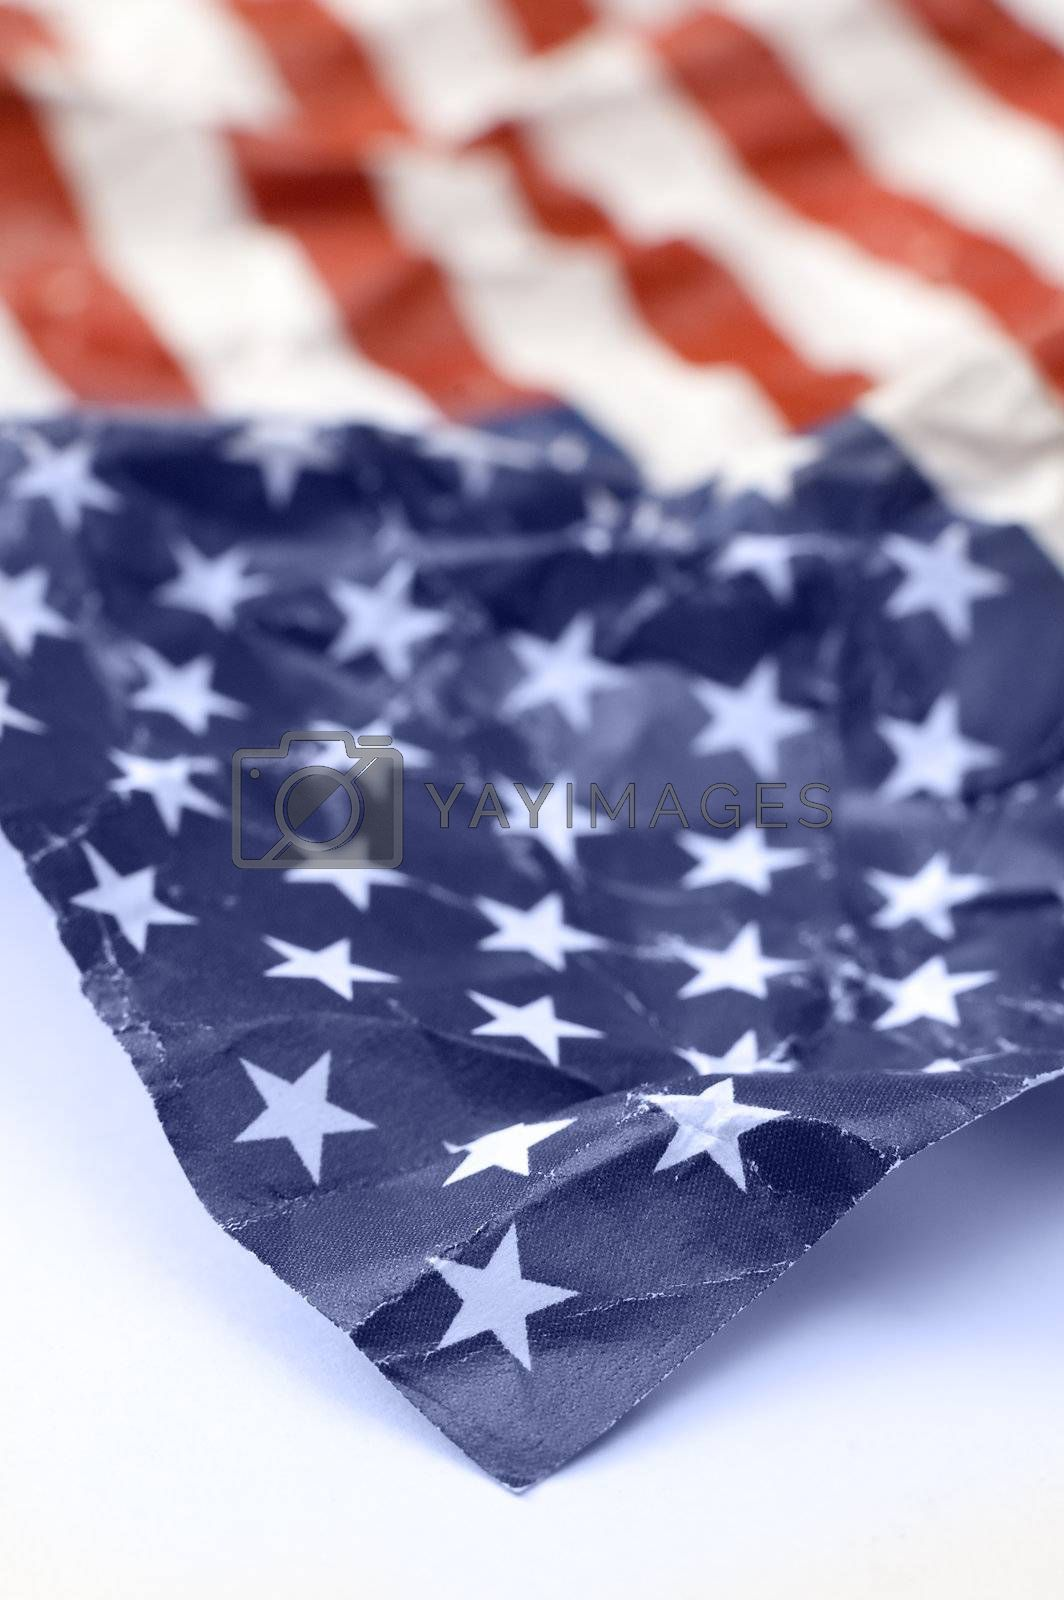 detail photo of wrinkled USA flag, shallow depth of view